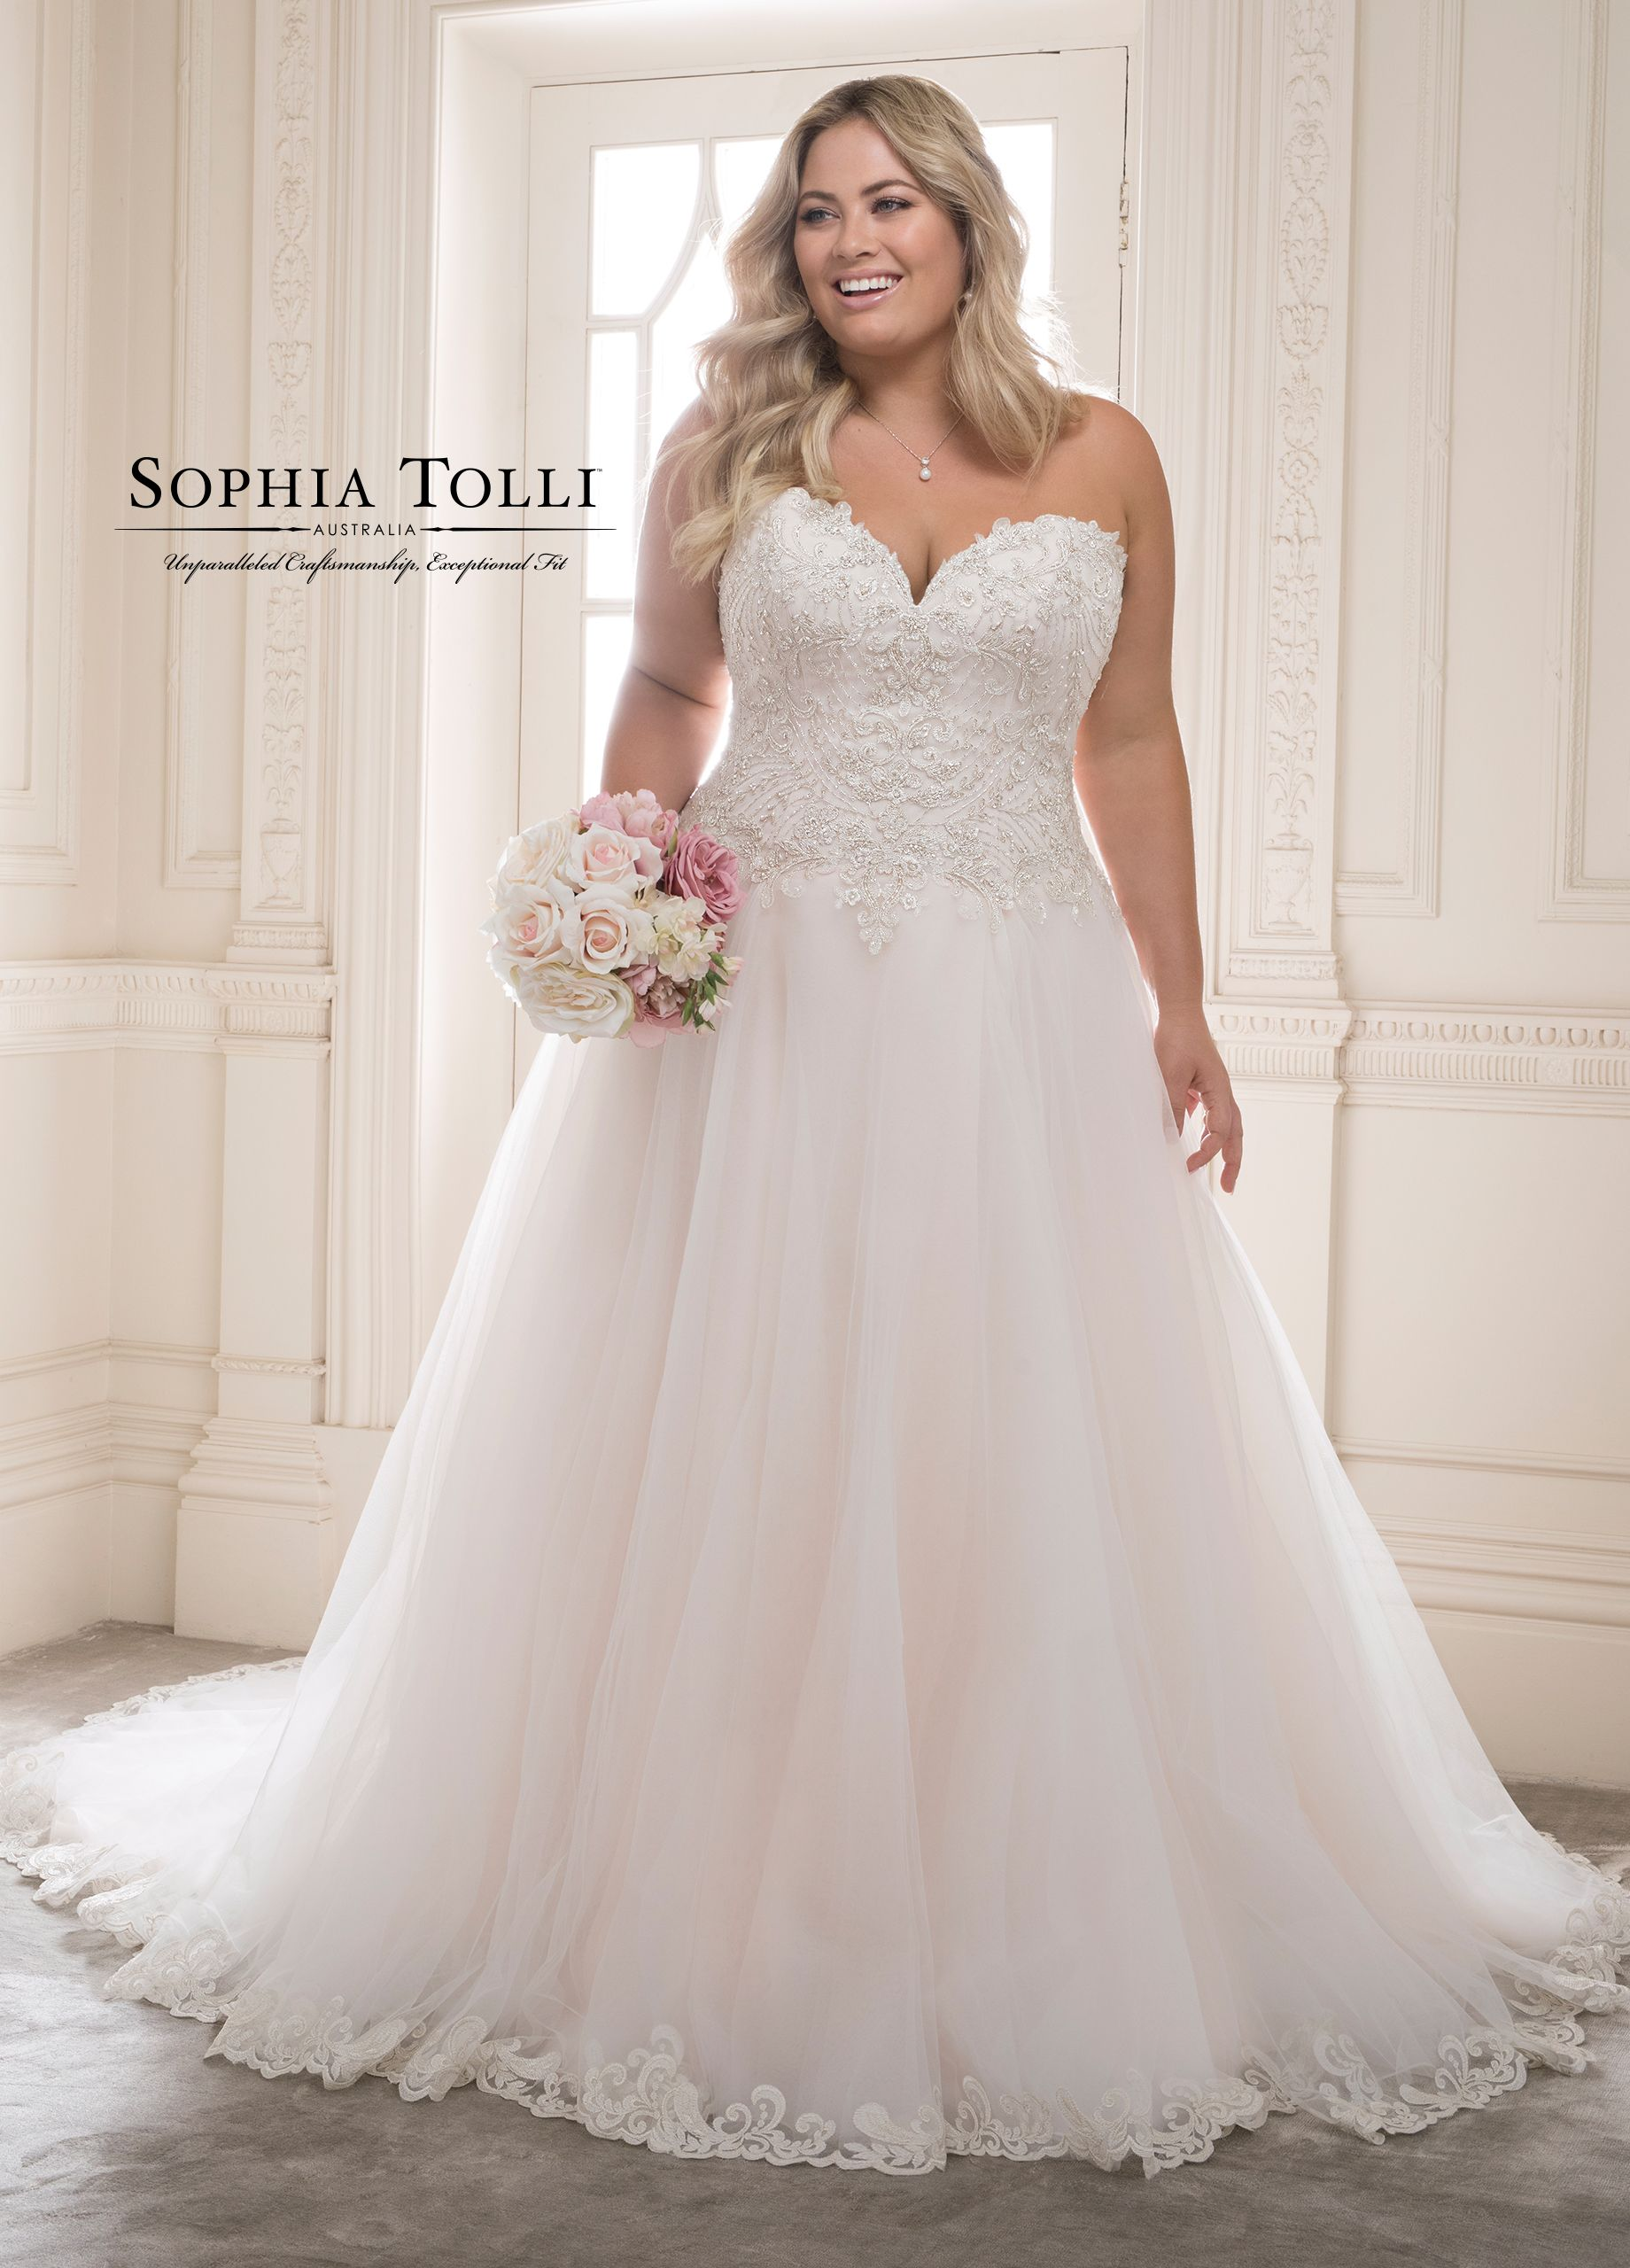 Royal Misty Plus Size Tulle Ballgown Wedding Dress - Y21816 Morganite #tulleballgown